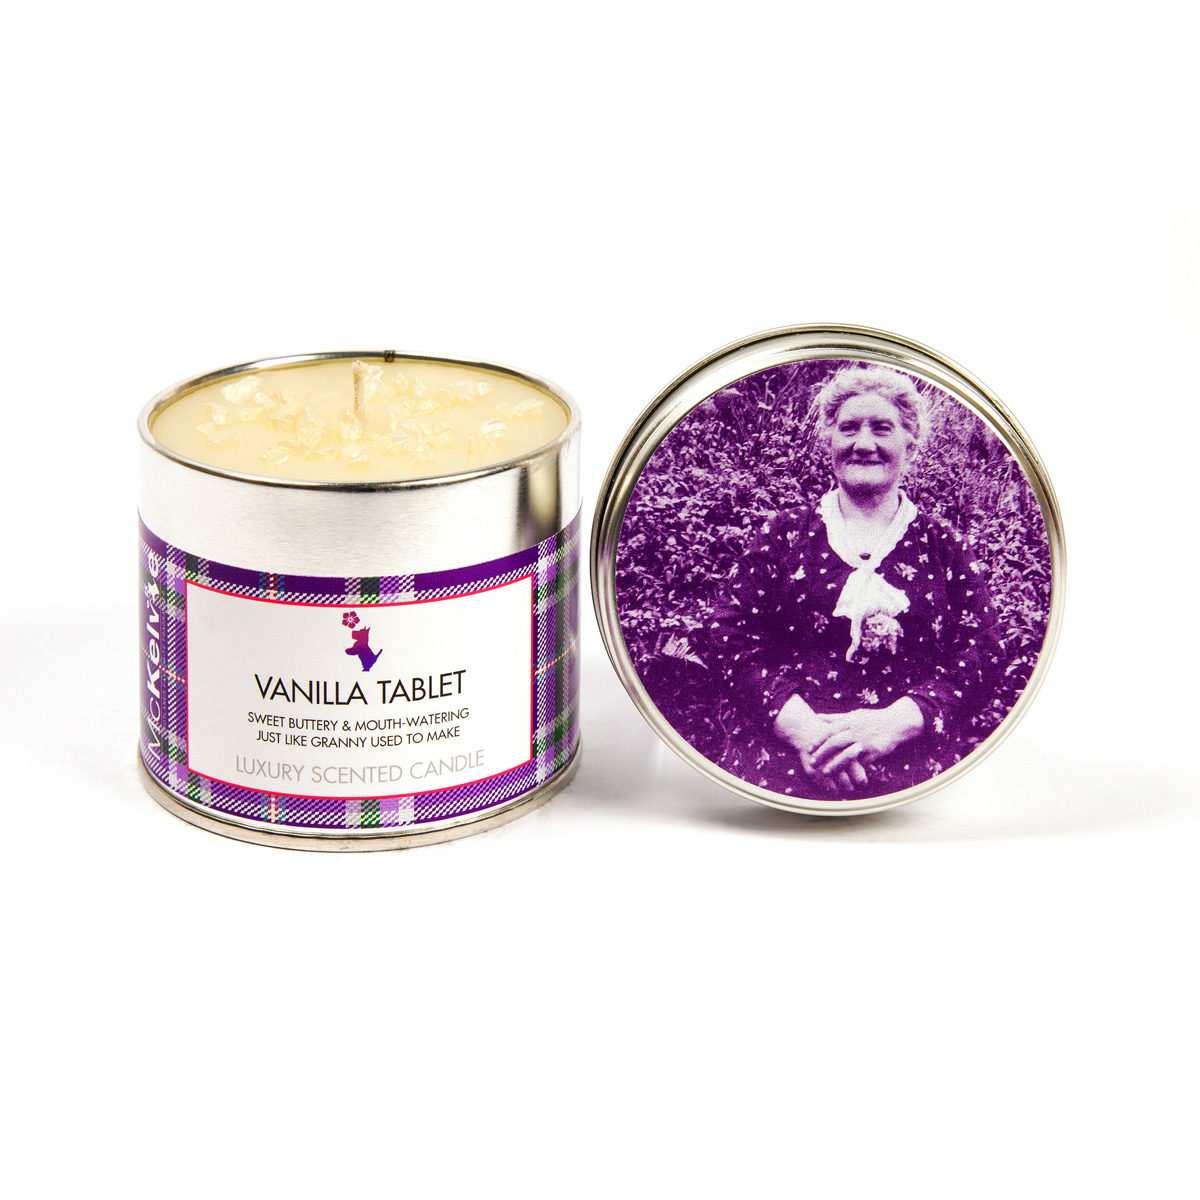 Vanilla Tablet Scented Candle Tin